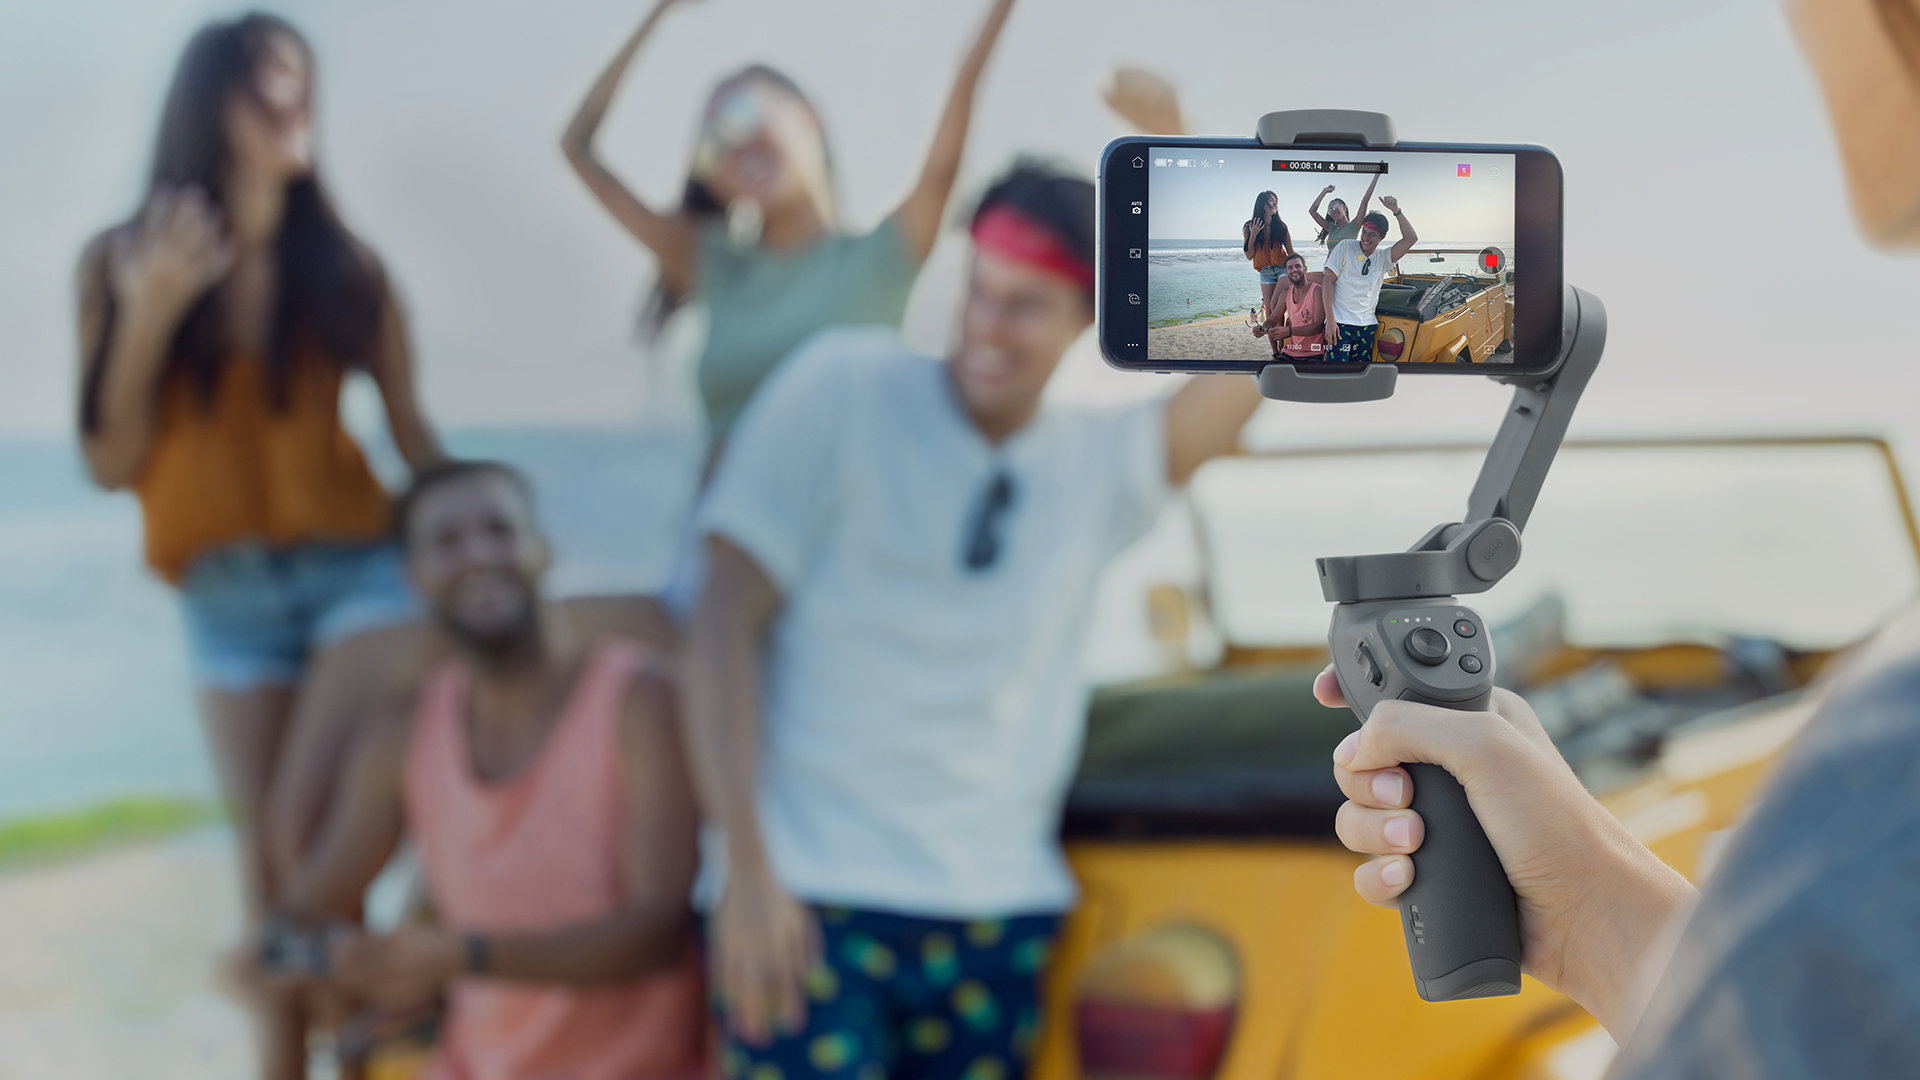 DJI strikes back against its smartphone-steadying rivals with the